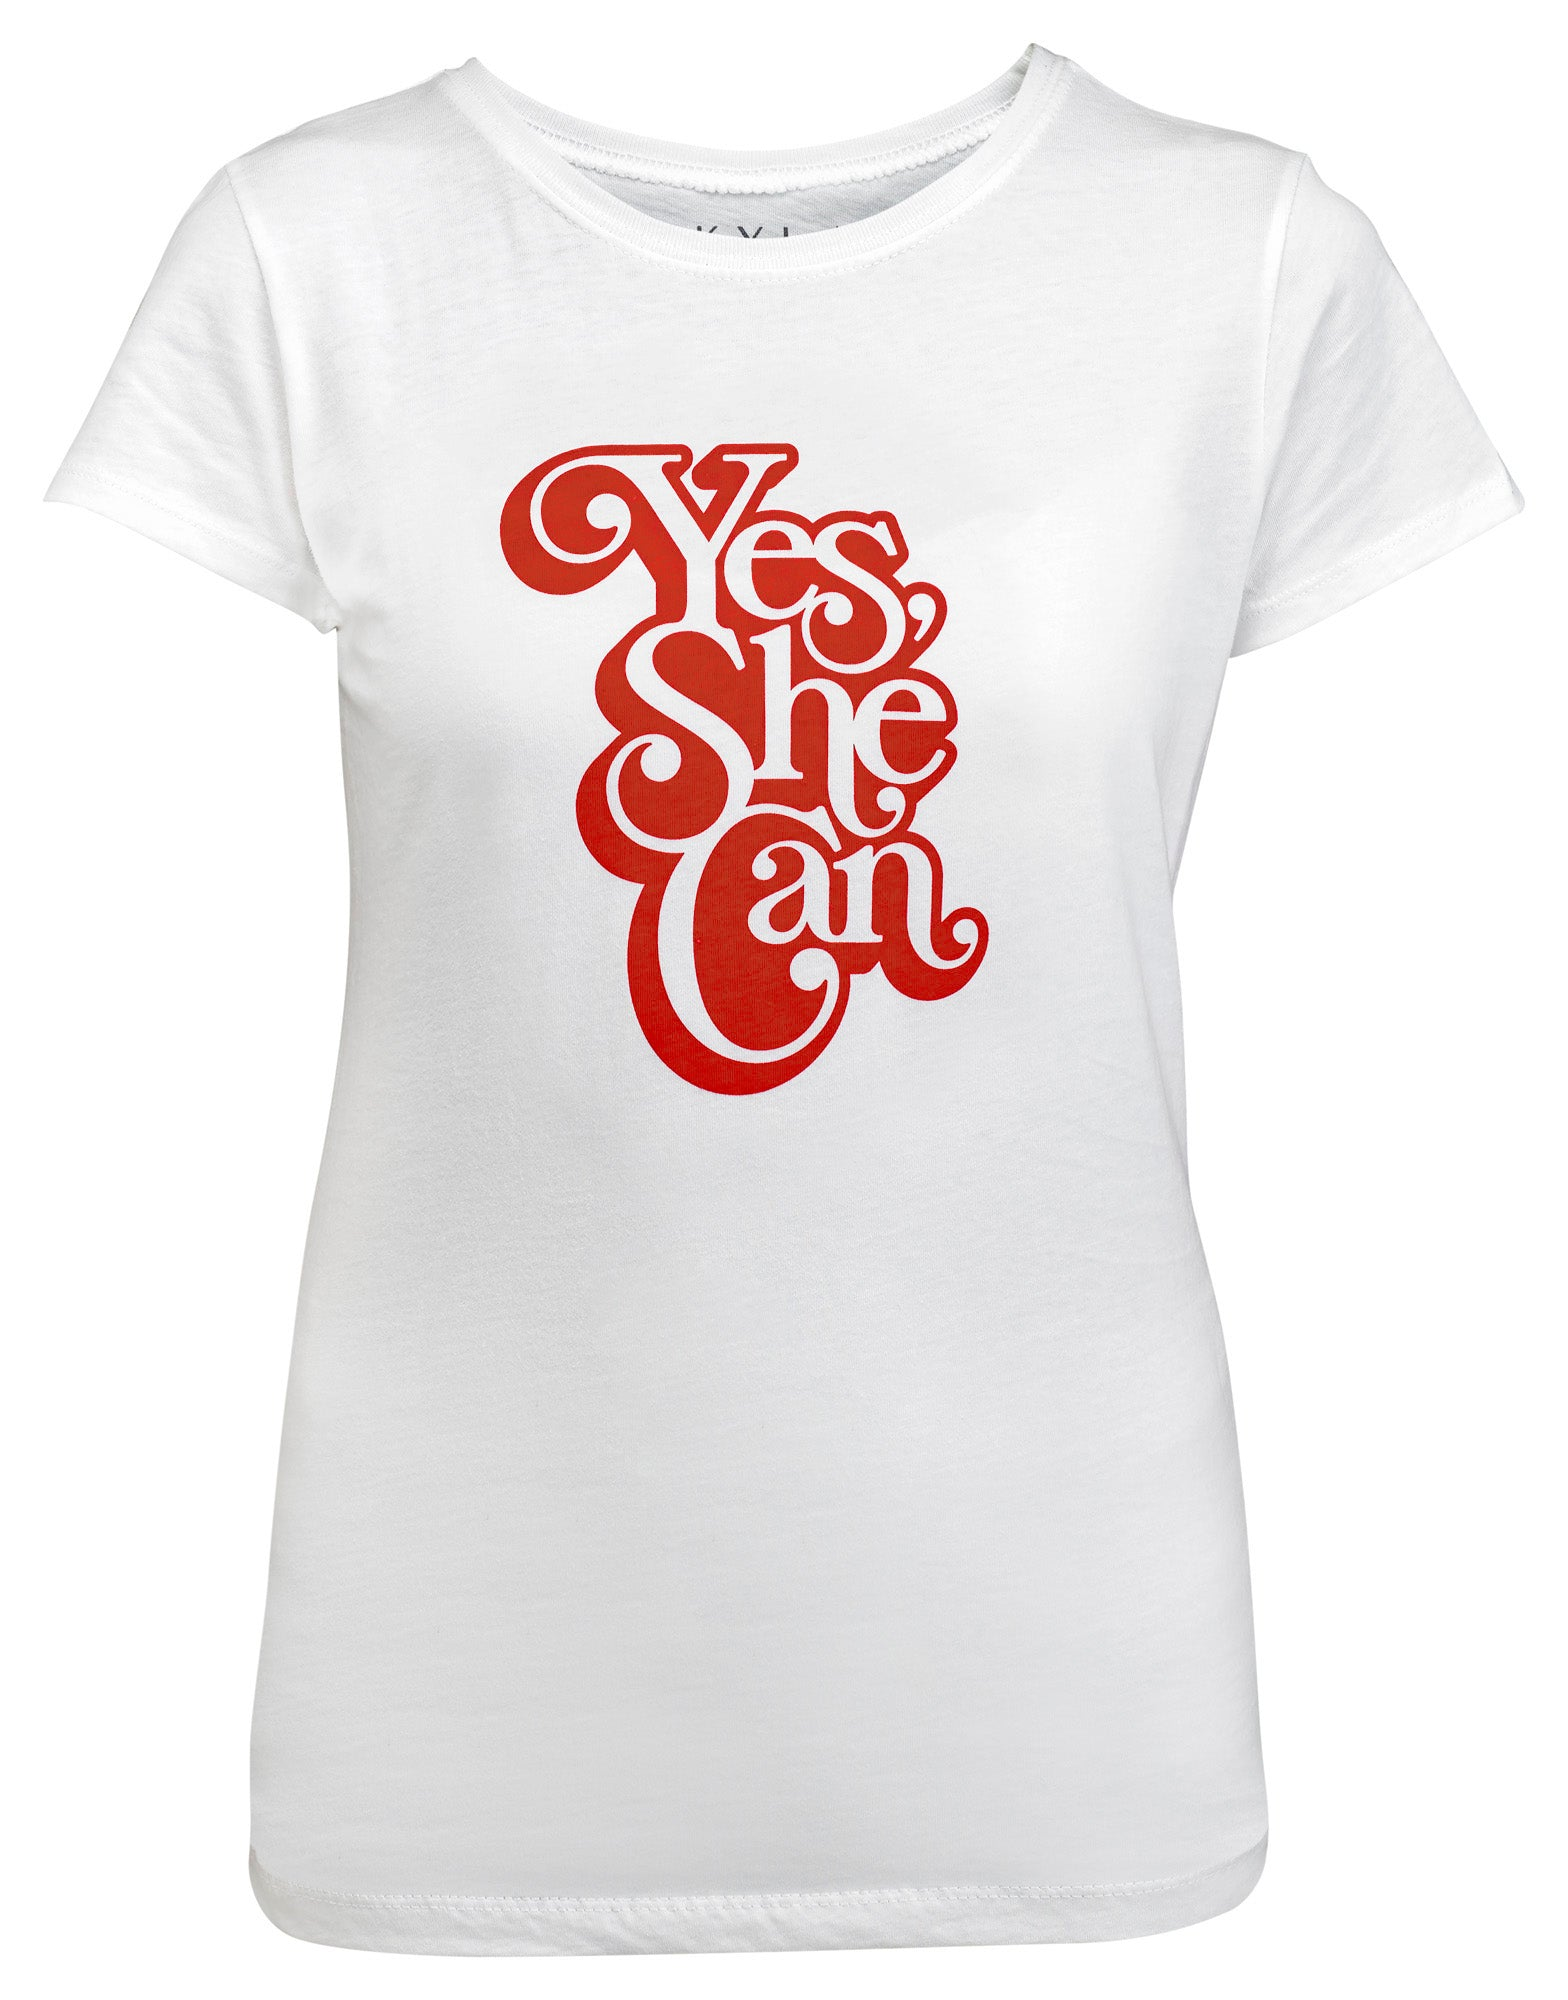 Yes, She Can Youth Graphic Tee - White